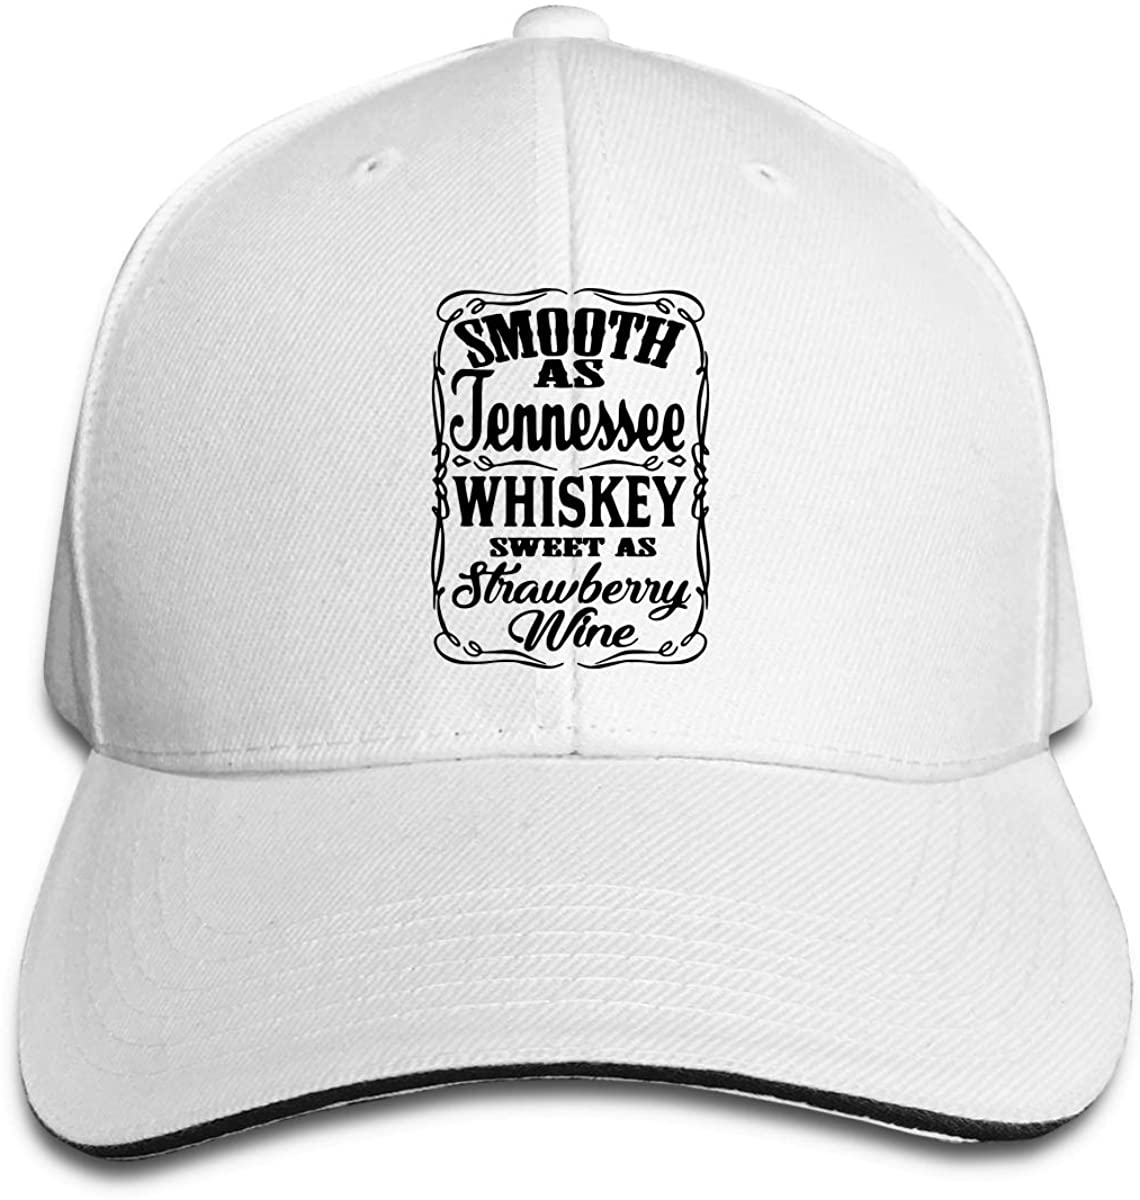 Woman Boys Classic Pointed Cap Hats Smooth As Tennessee Whiskey 2